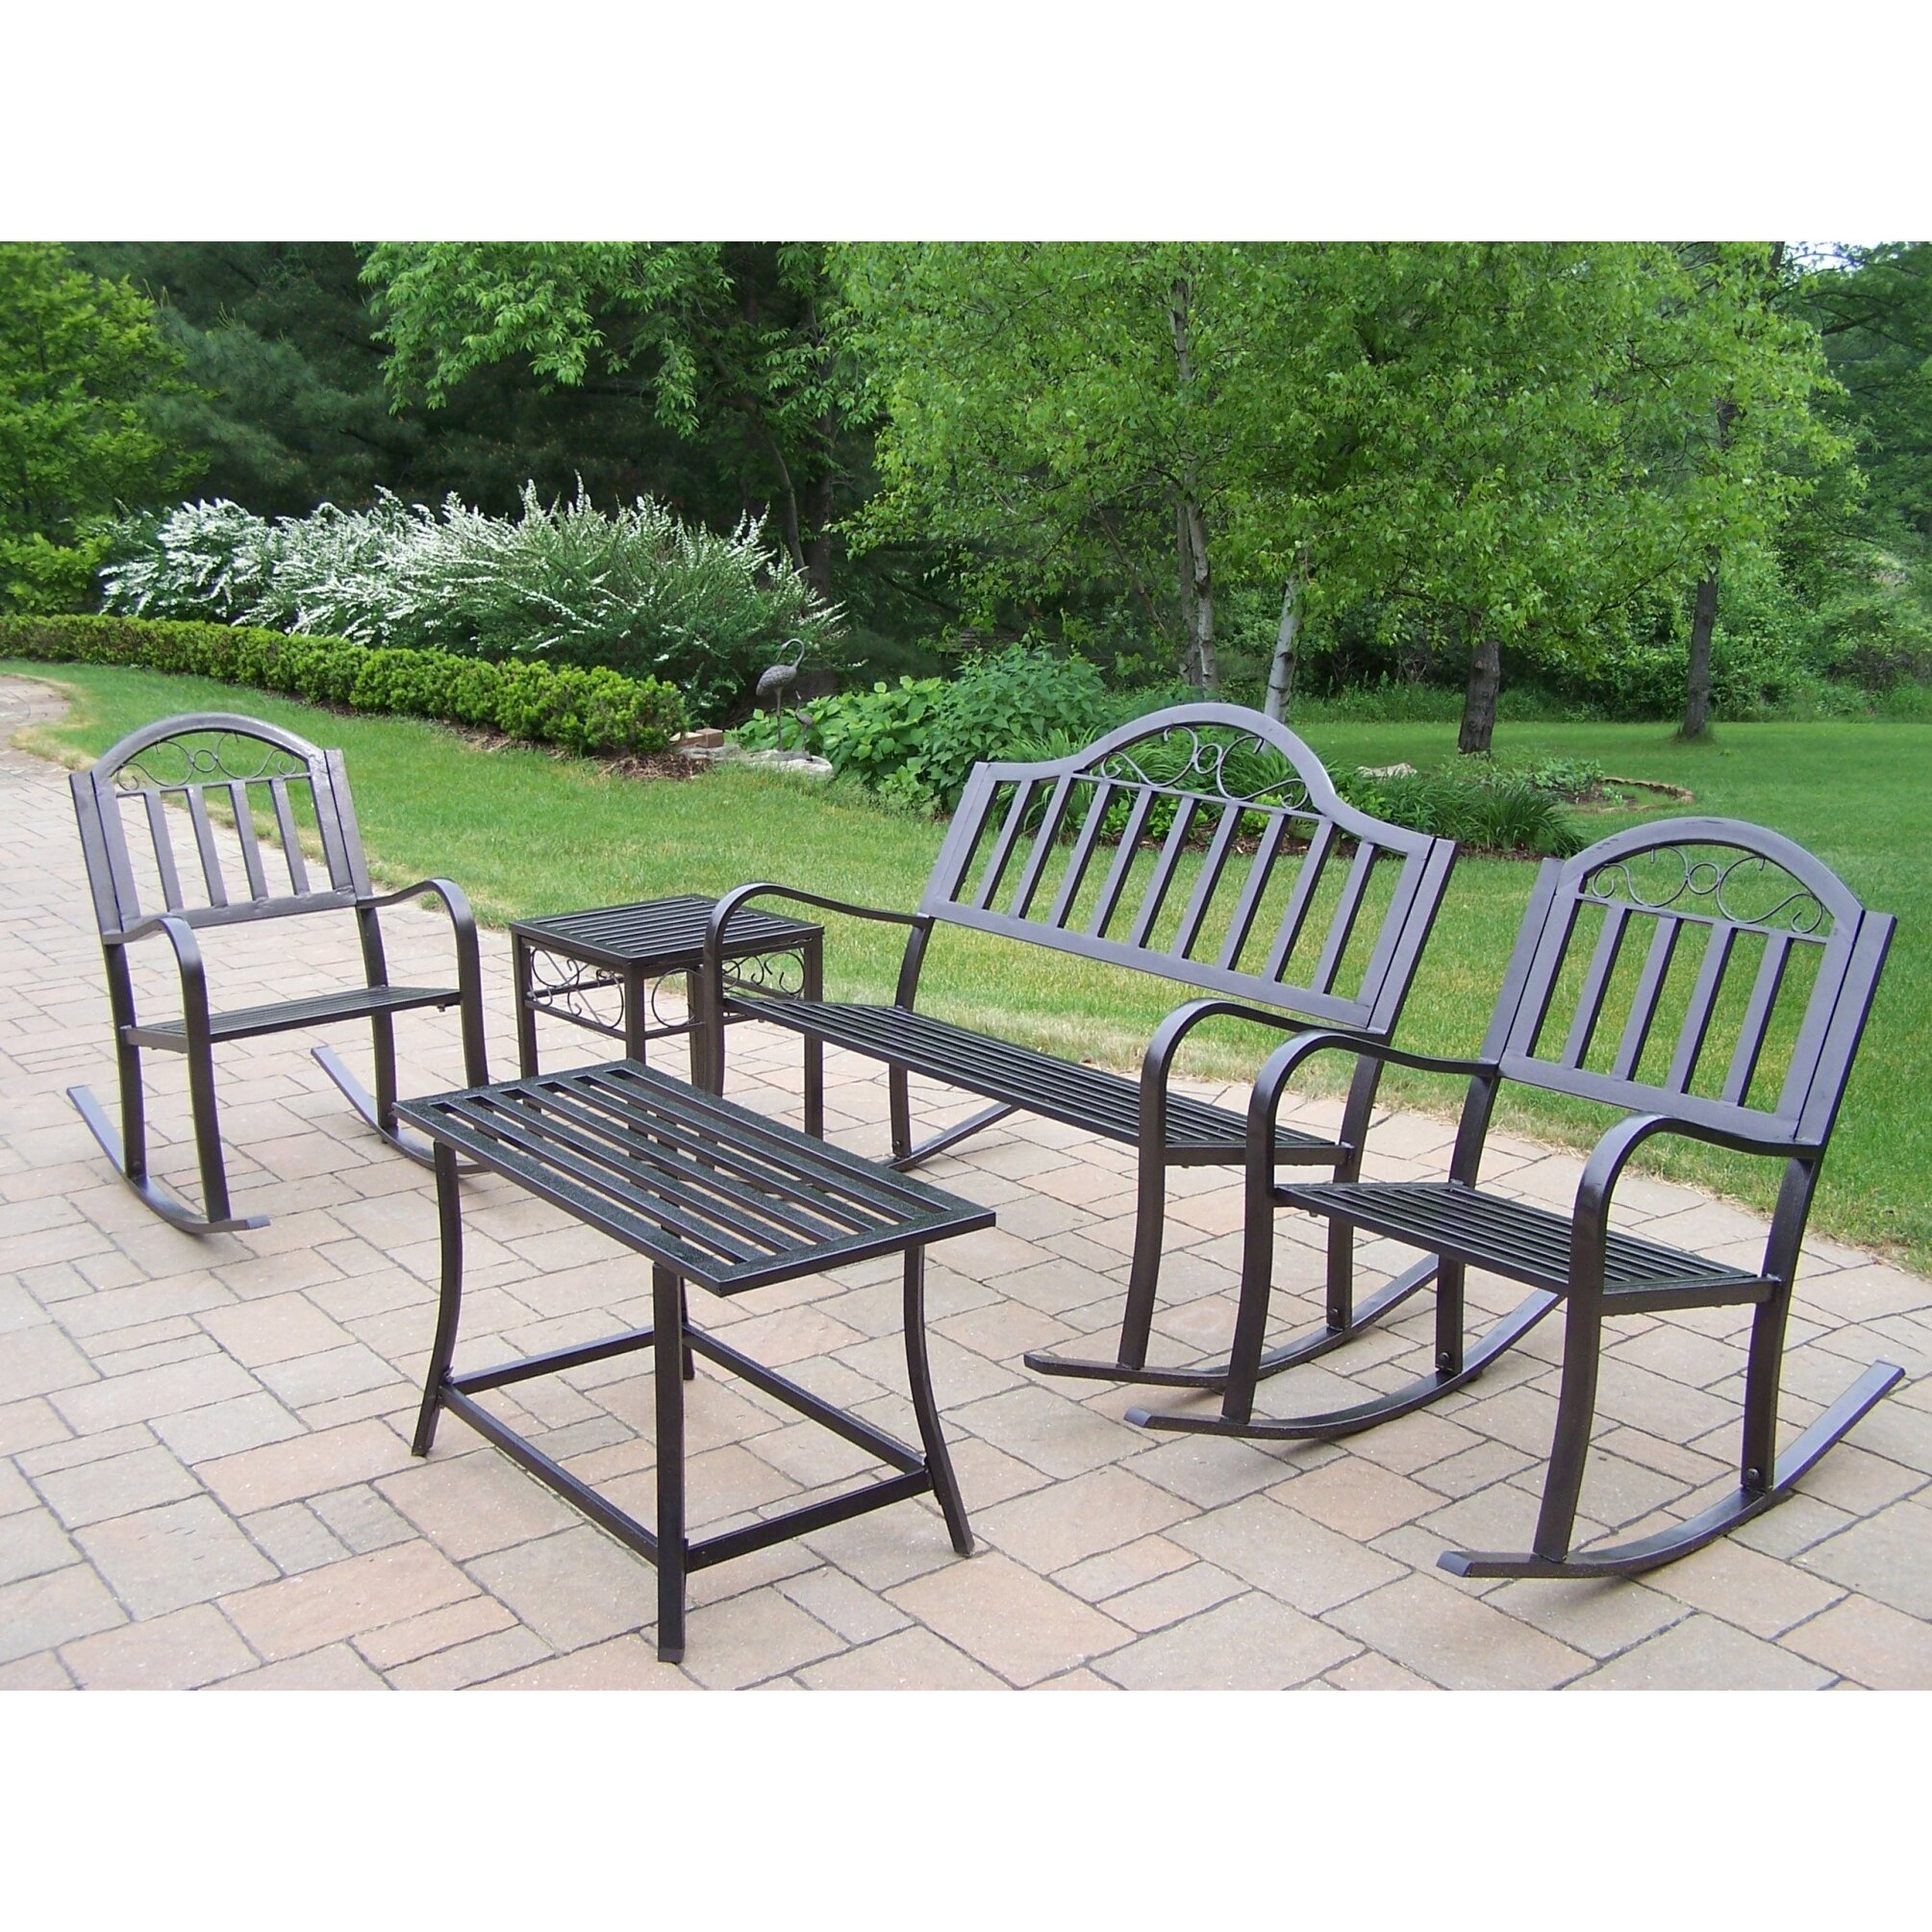 Outdoor Patio Furniture Rochester Ny: Oakland Living Rochester 5 Piece Rocker Seating Group Set